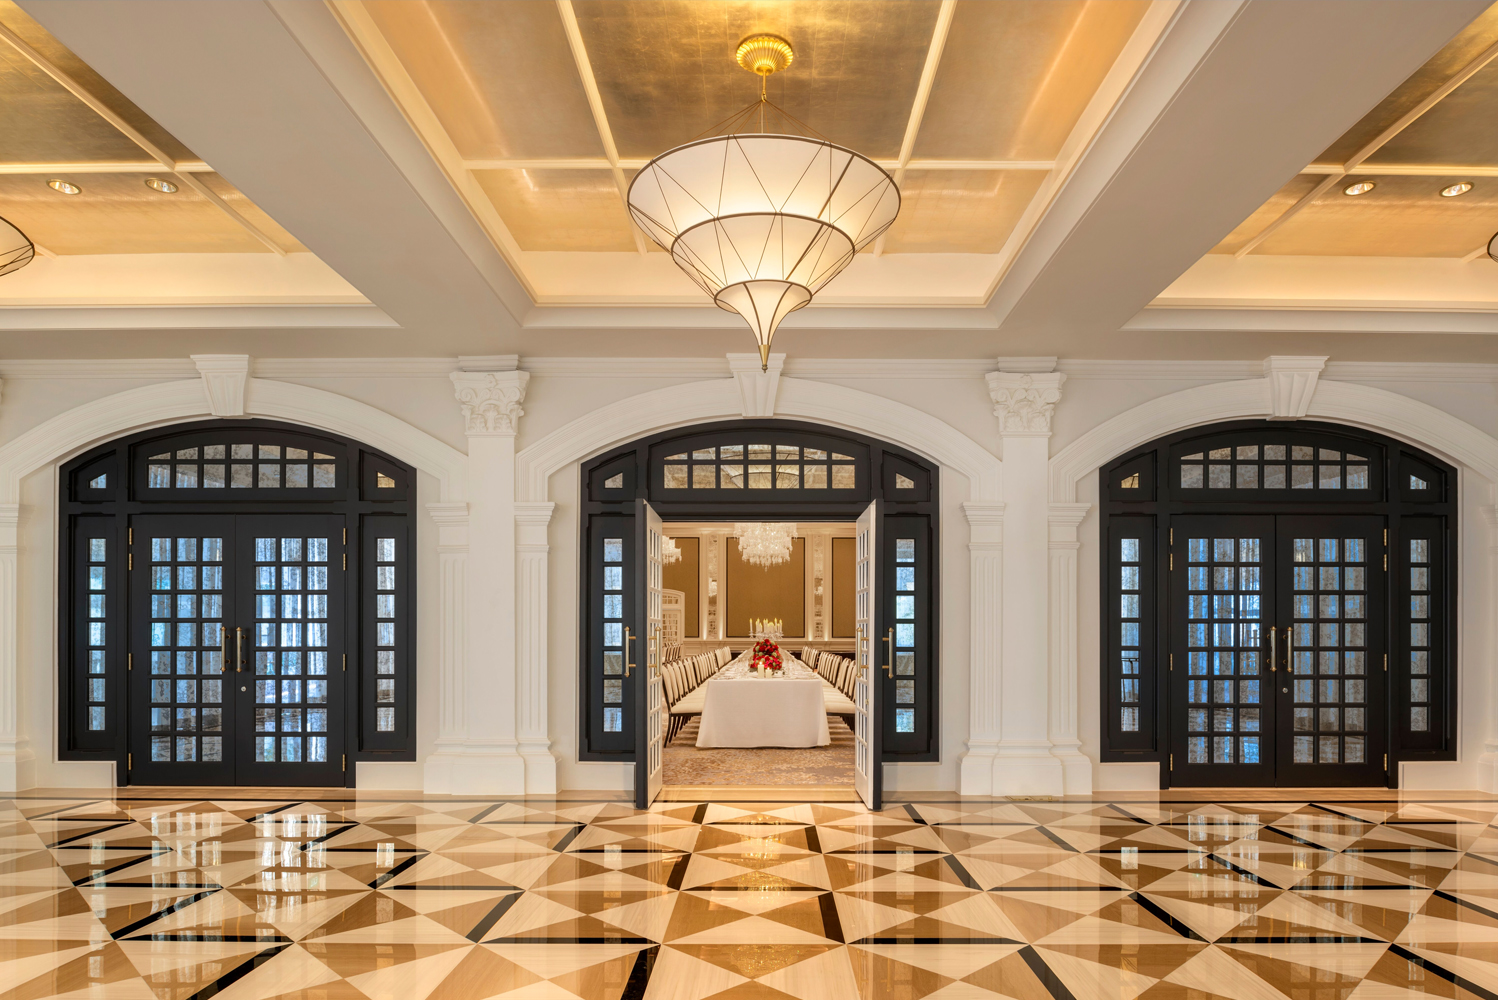 A flagship property within Accor, the hotel's three-phased restoration began in February 2017.